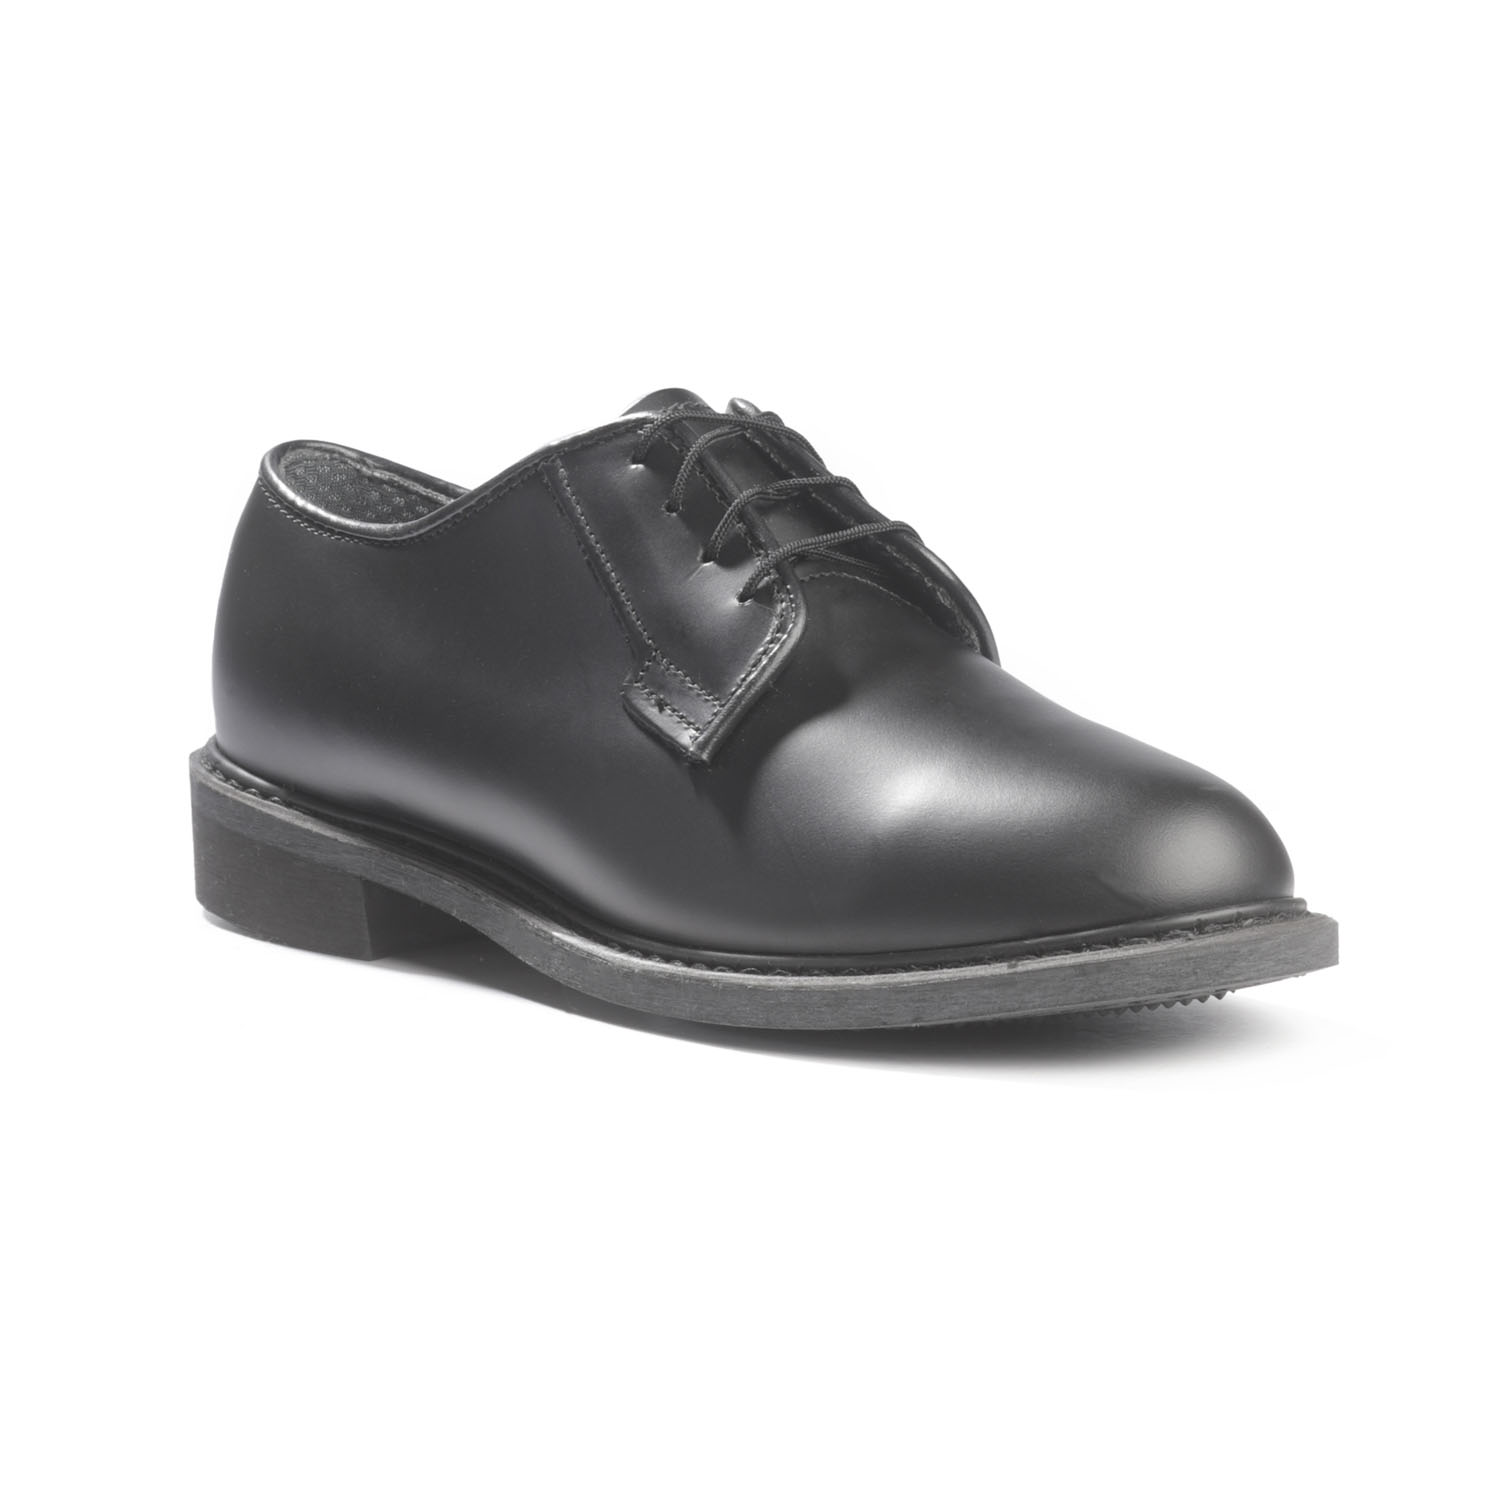 Bates Womens Leather Uniform Oxfords